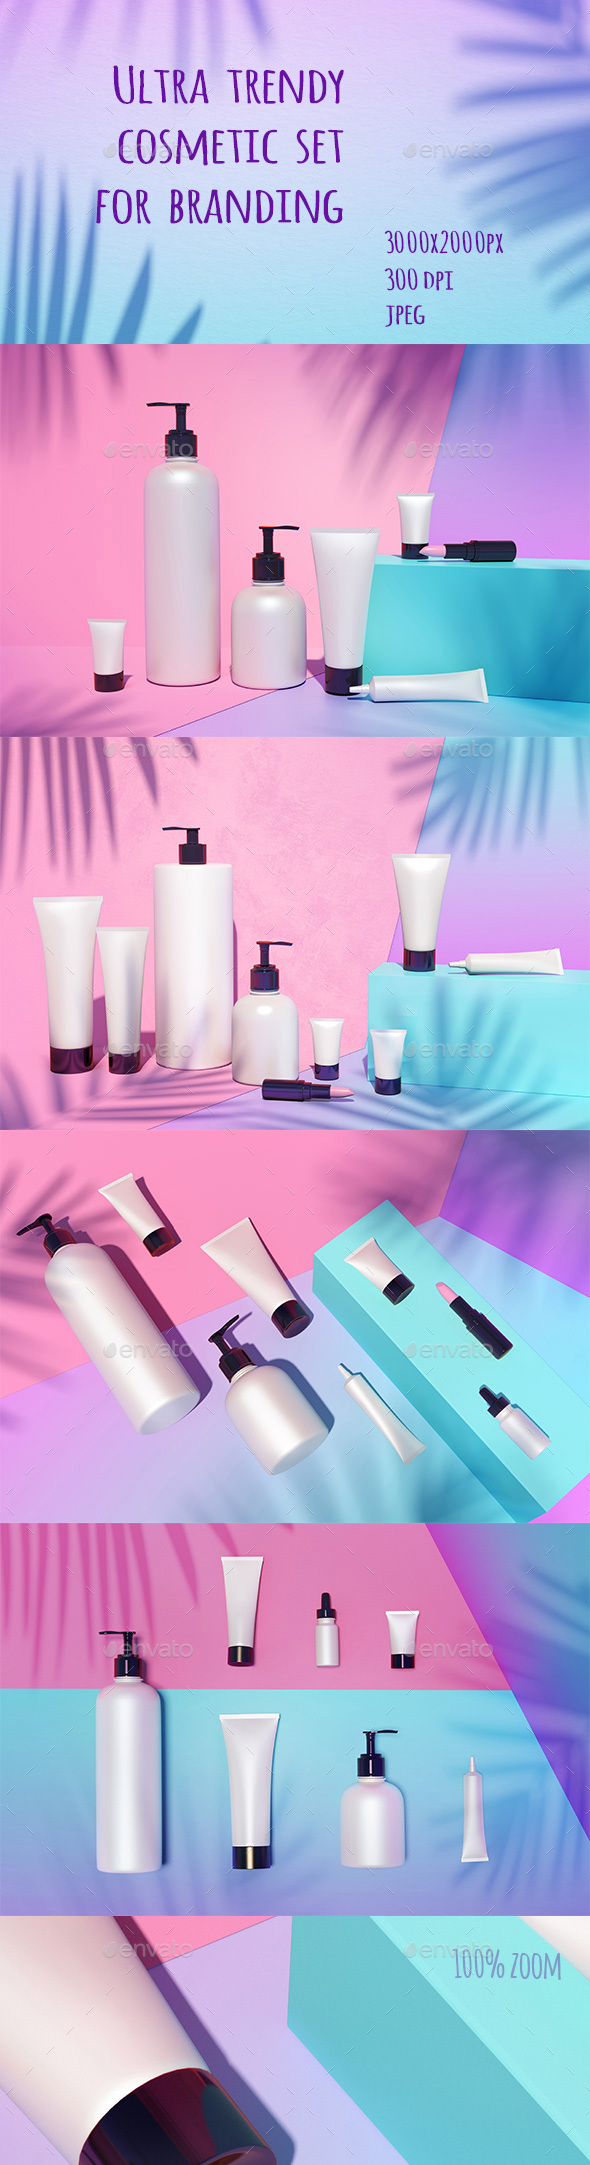 Cosmetic Mock Up Under the Sunlight - 3D Backgrounds